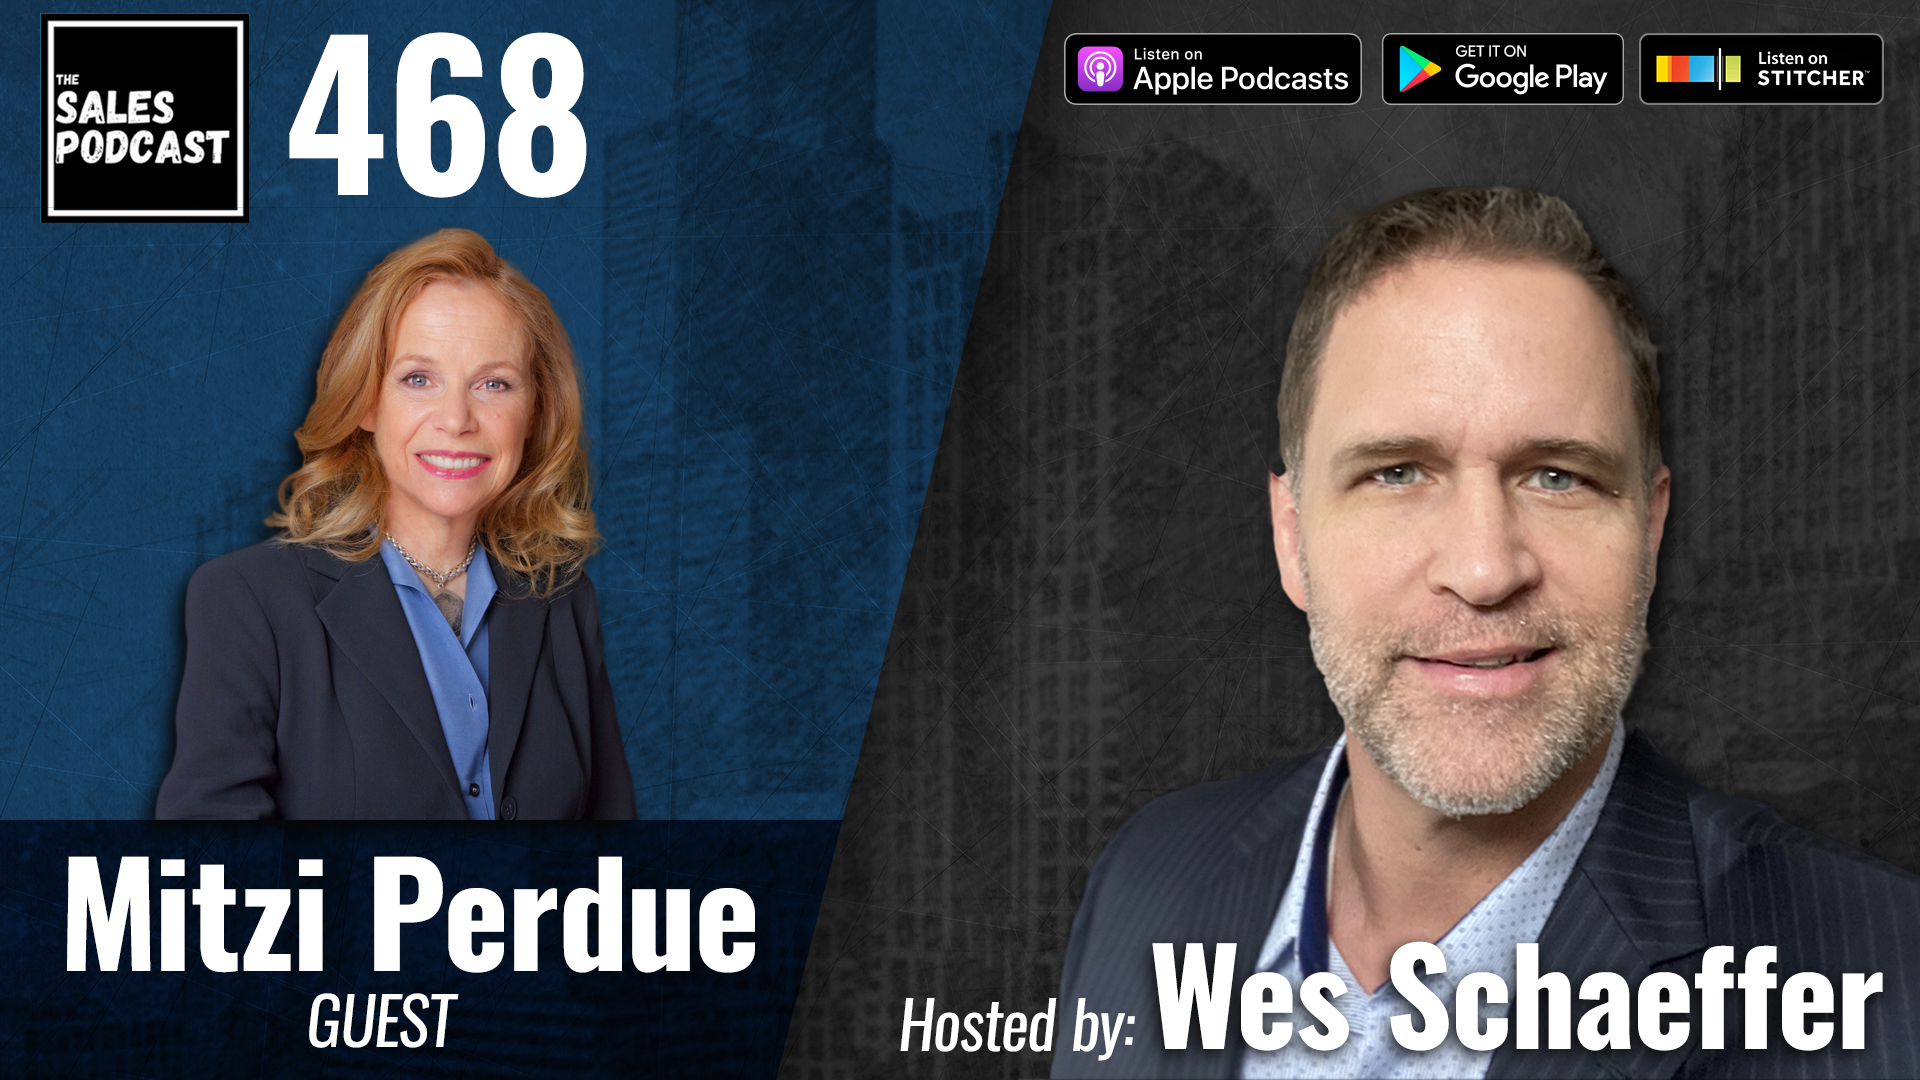 Mitzi Perdue, Transformational Leadership Lessons Learned In Life on The Sales Podcast with Wes Schaeffer, The Sales Whisperer®